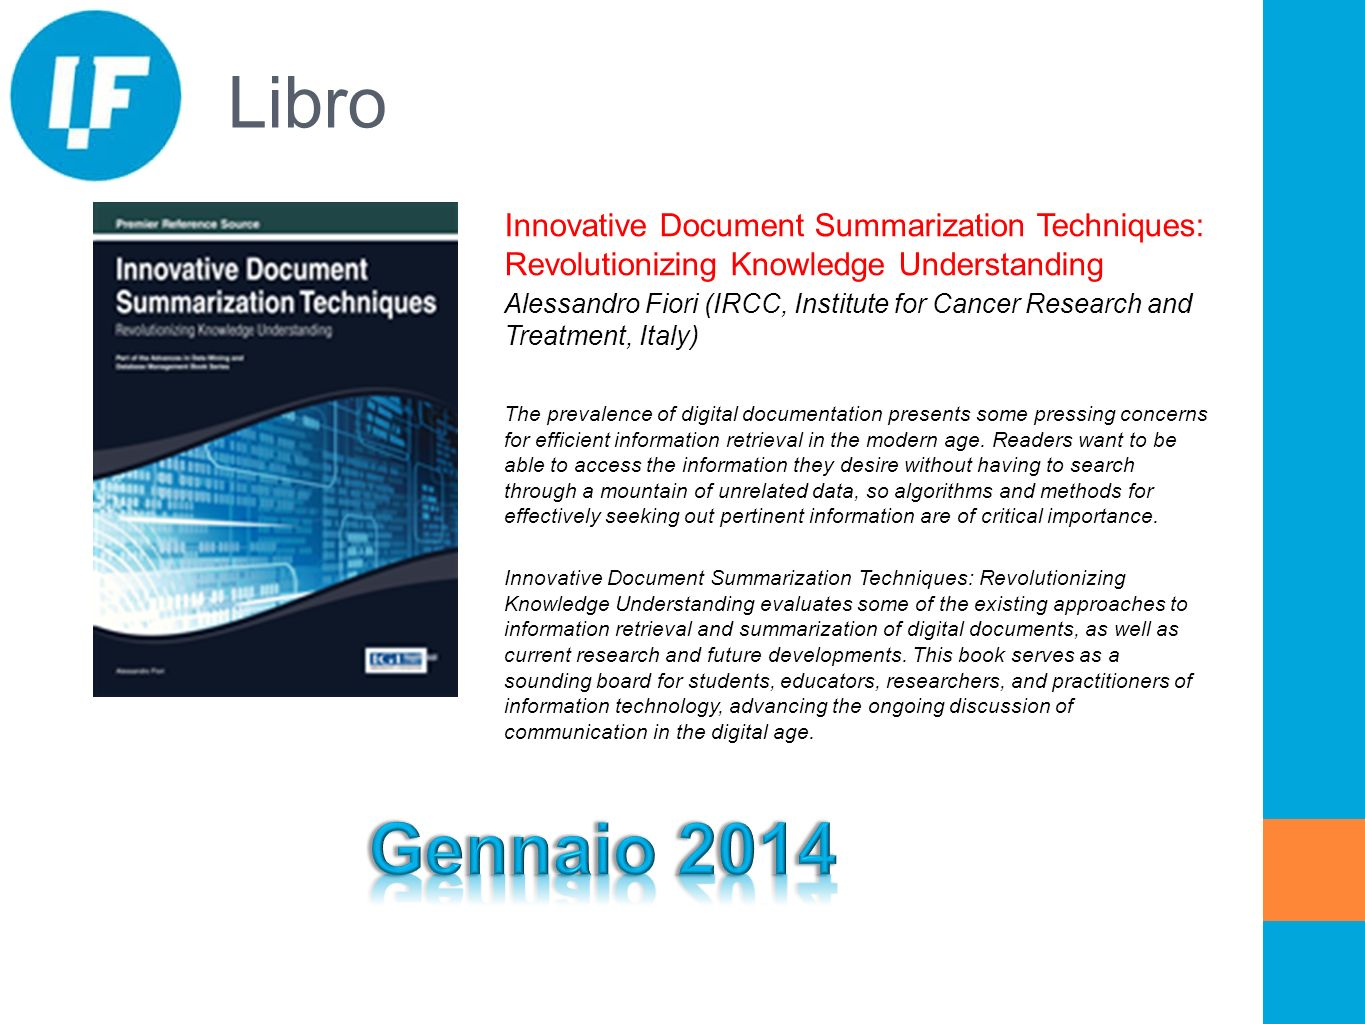 Libro Innovative Document Summarization Techniques: Revolutionizing Knowledge Understanding Alessandro Fiori (IRCC, Institute for Cancer Research and